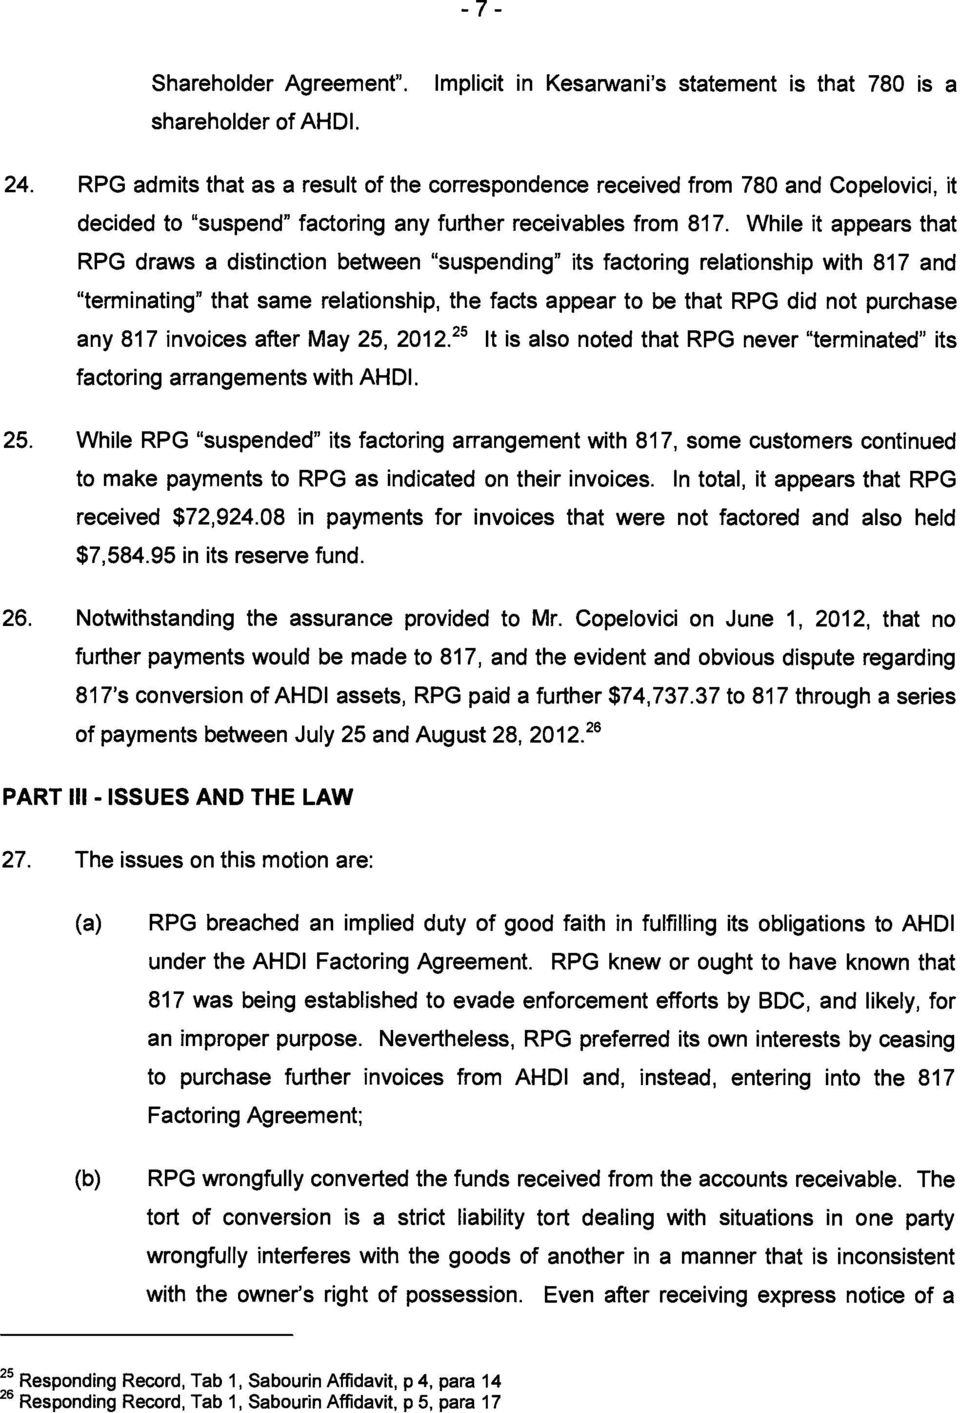 "While it appears that RPG draws a distinction between ""suspending"" its factoring relationship with 817 and ""terminating"" that same relationship, the facts appear to be that RPG did not purchase any"